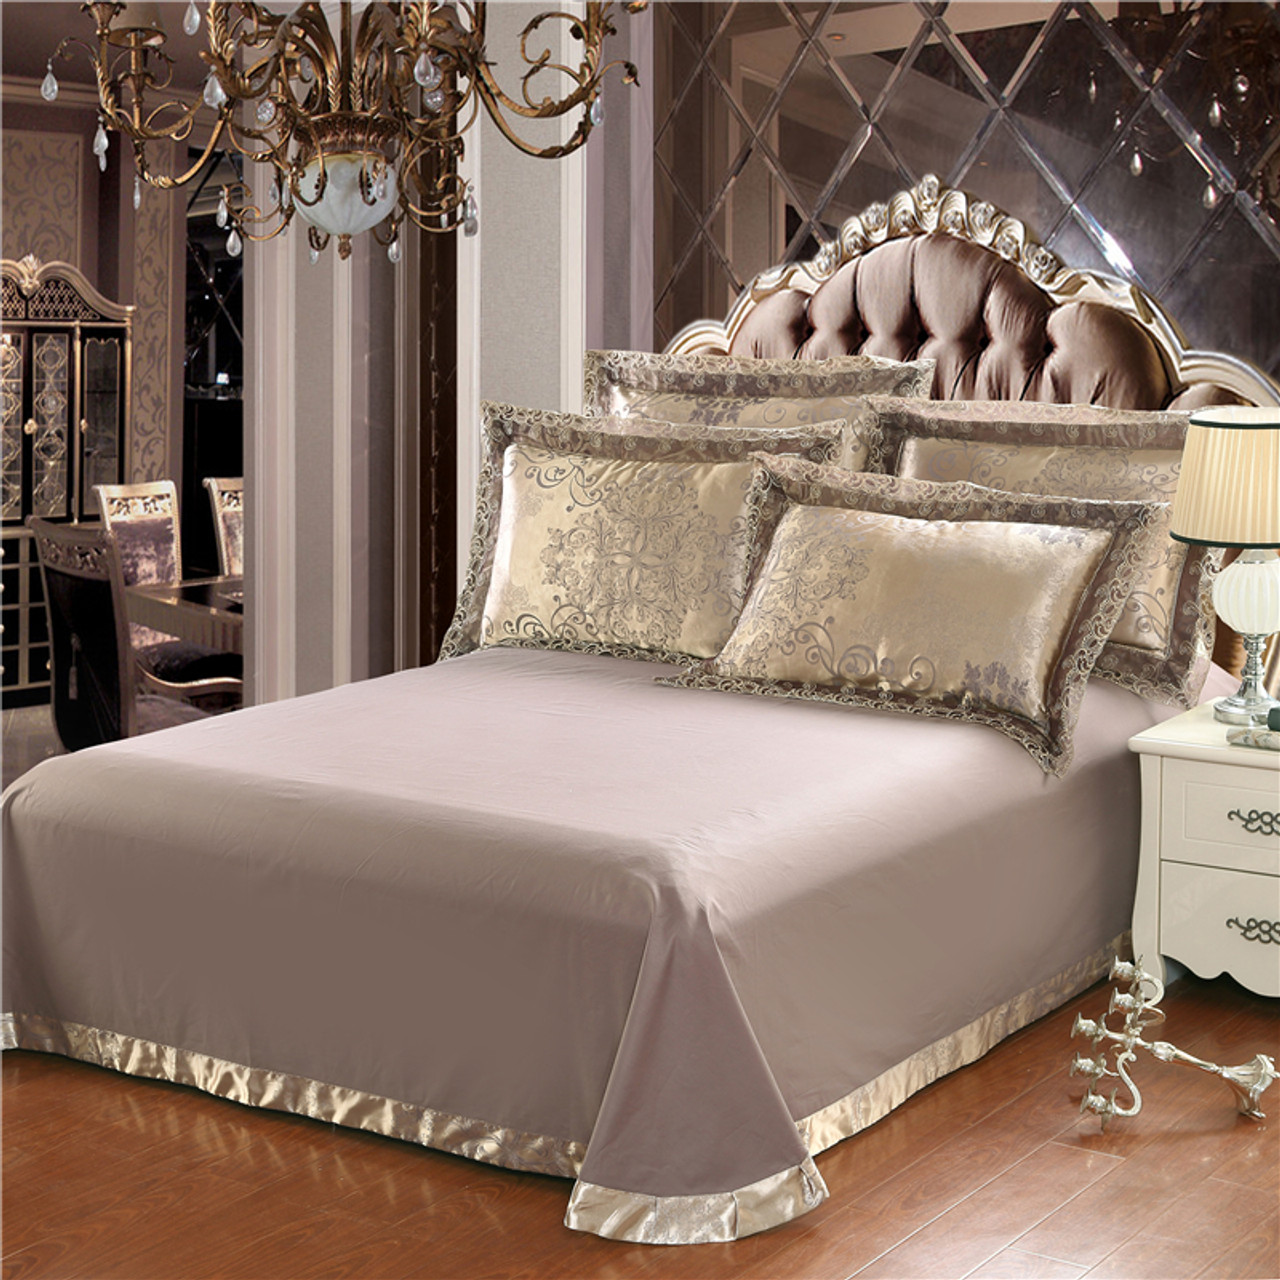 d1aa44fb00555 ... Gold silver coffee jacquard luxury bedding set queen king size stain  bed set 4pcs cotton ...